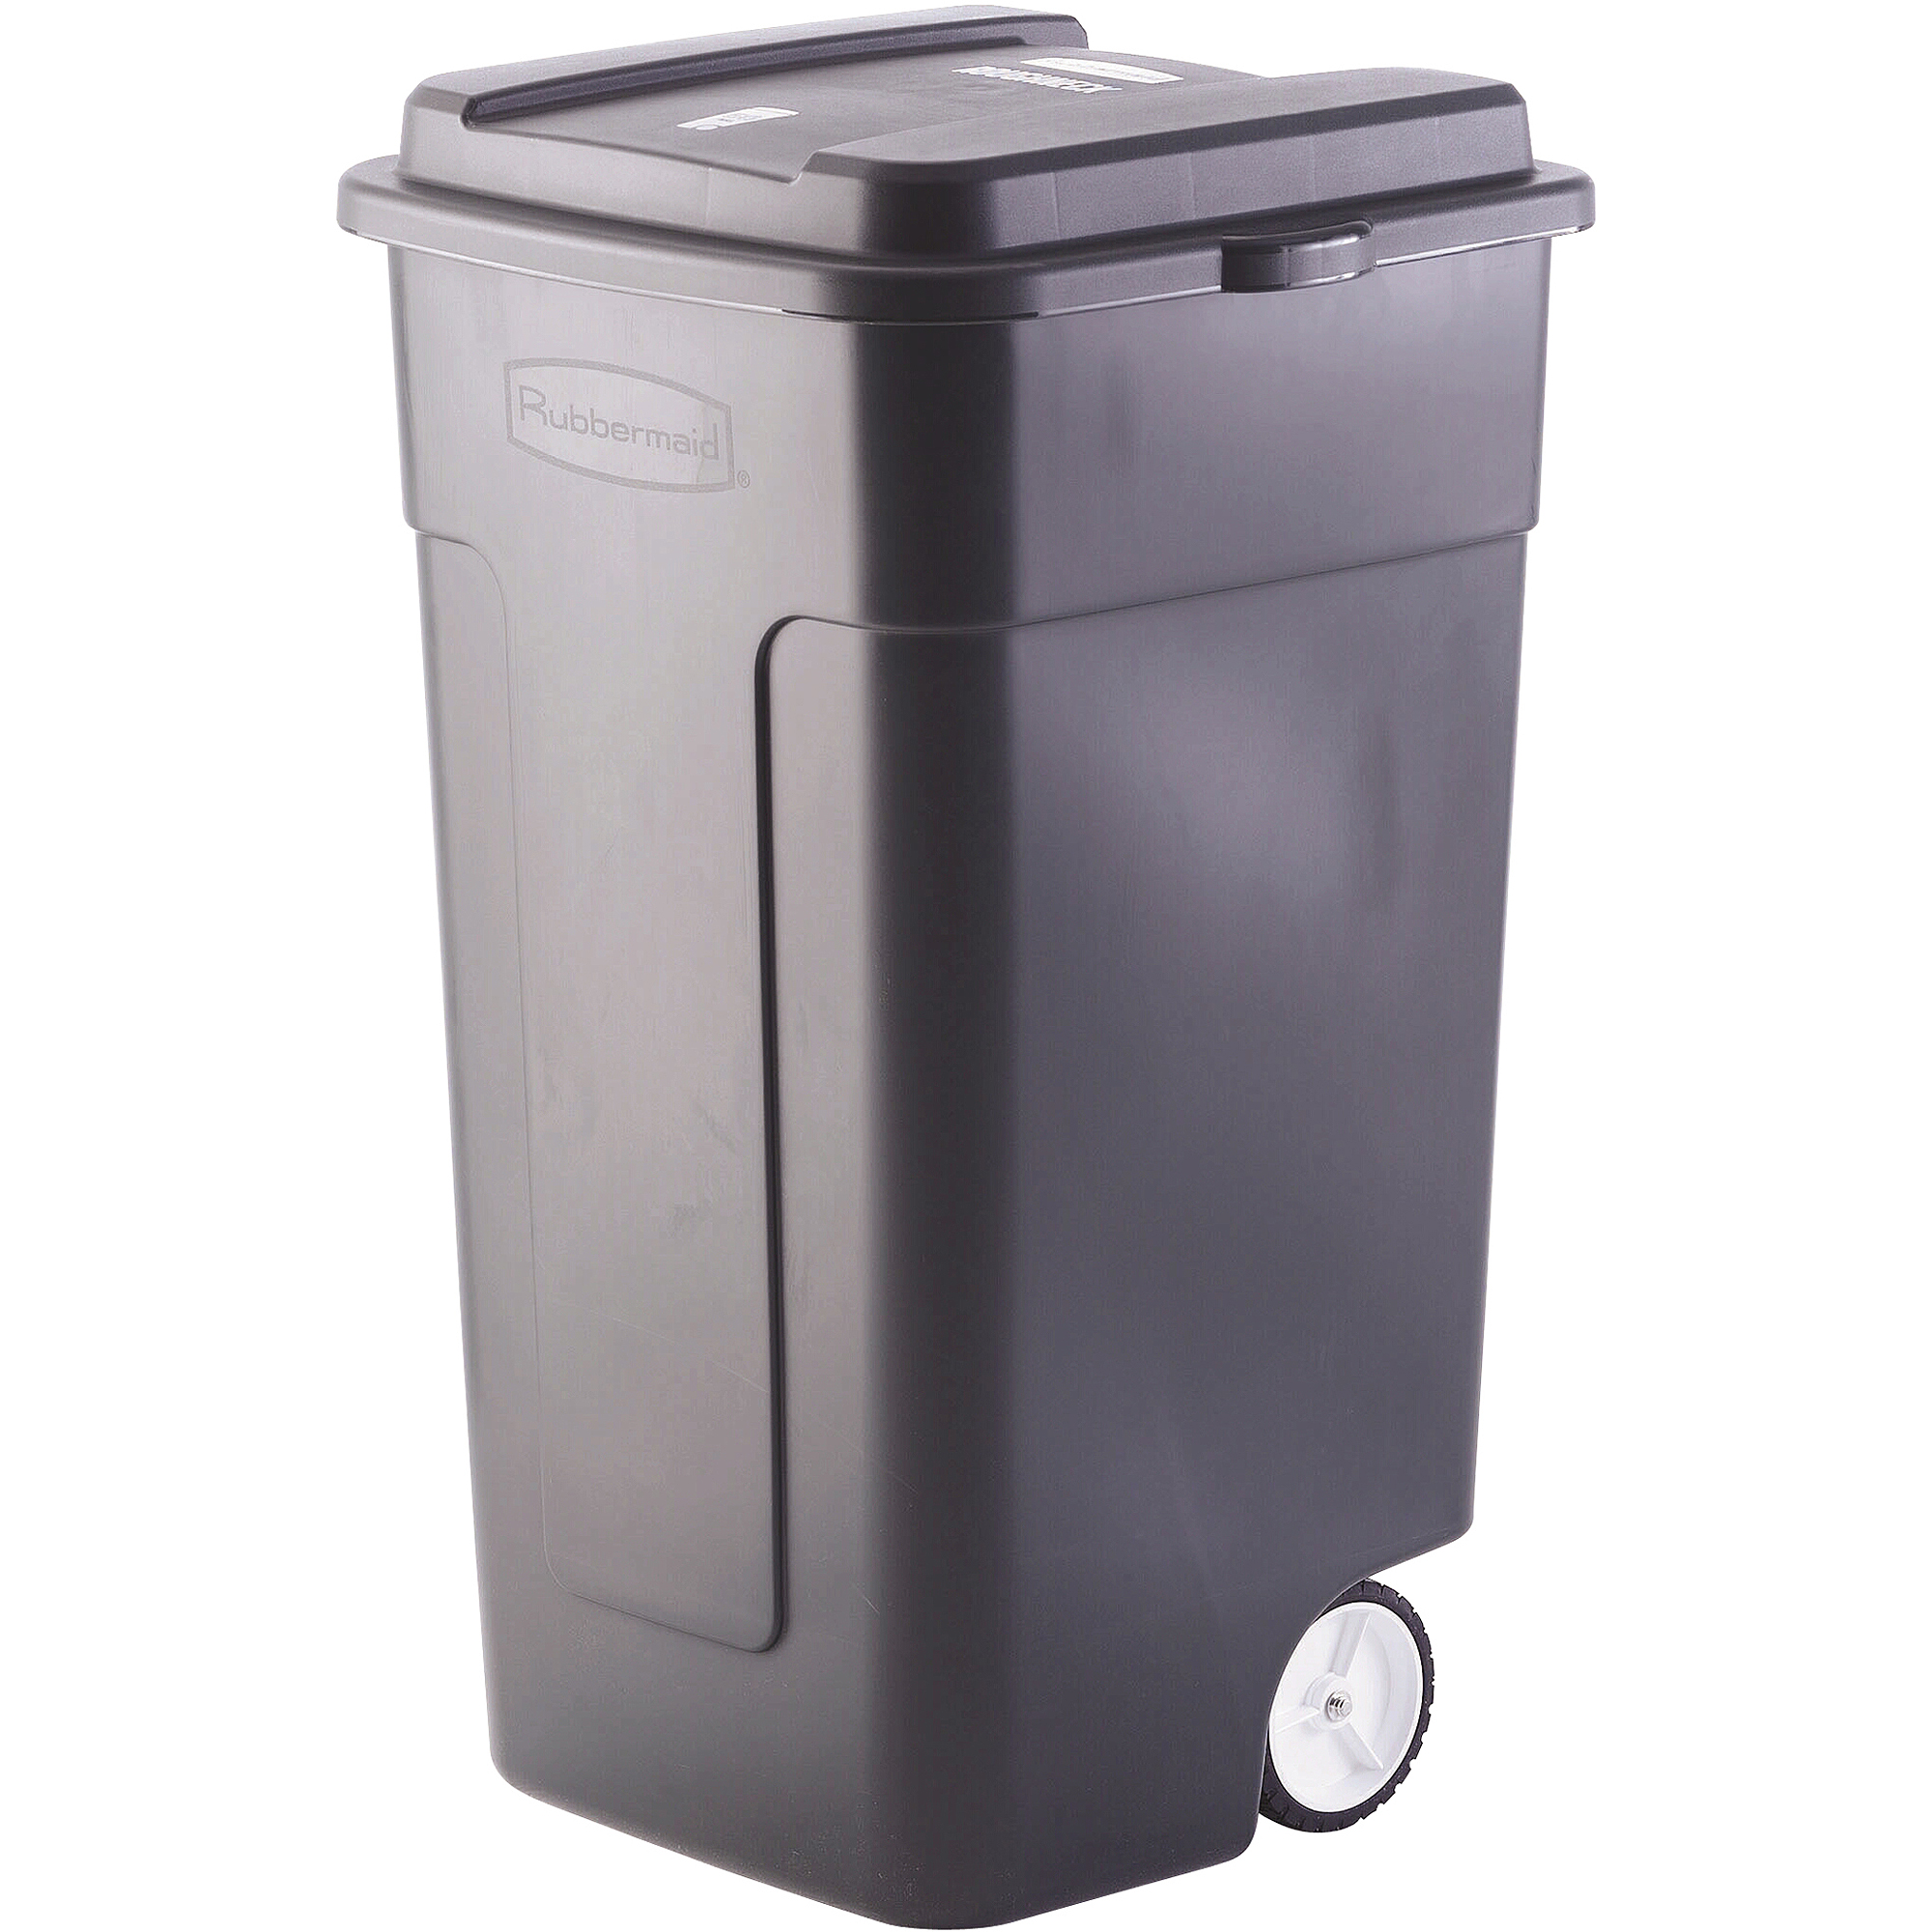 Rubbermaid 50 Gallon Wheeled Roughneck Trashcan Black Fg285100bla